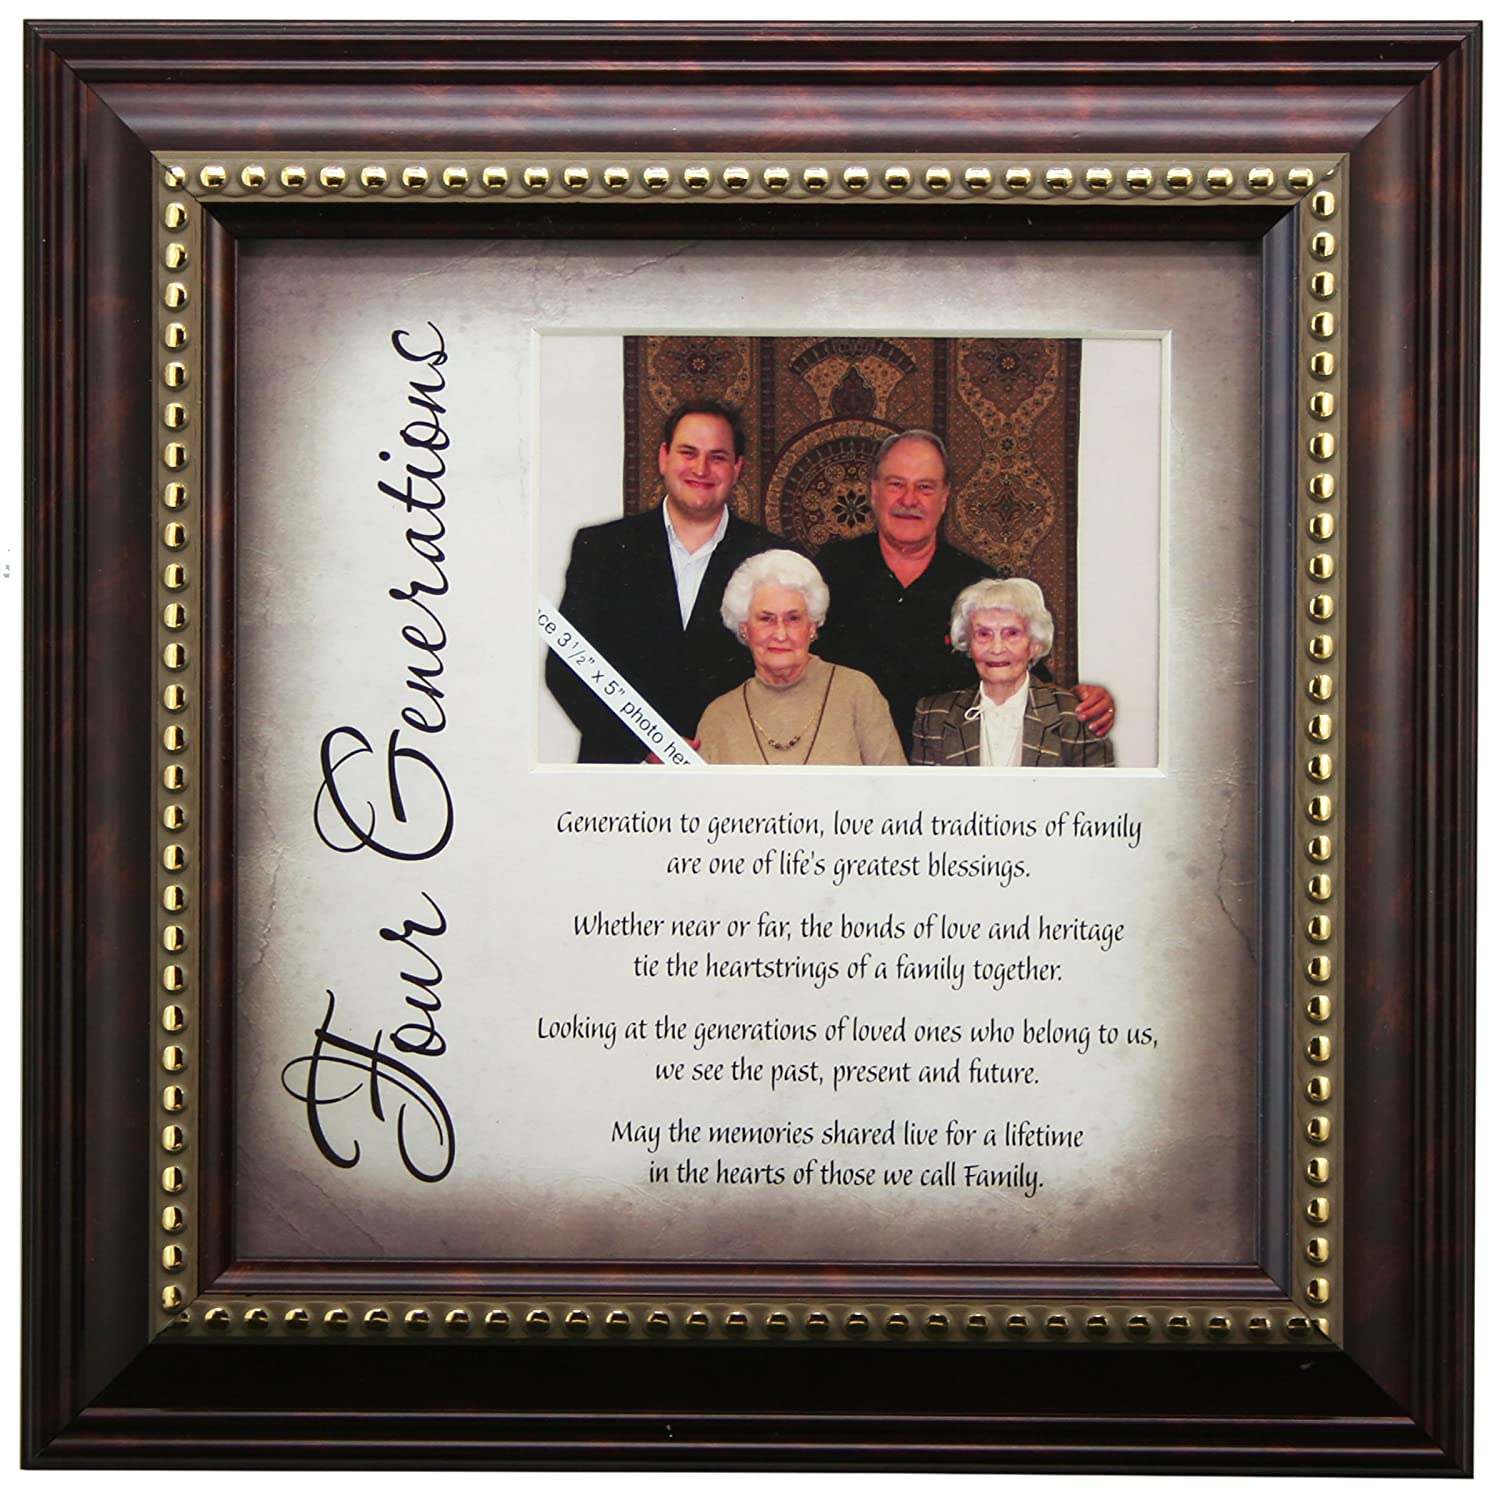 Amazon.com: 4 Generations Frame and Poem - Gift for Great ...